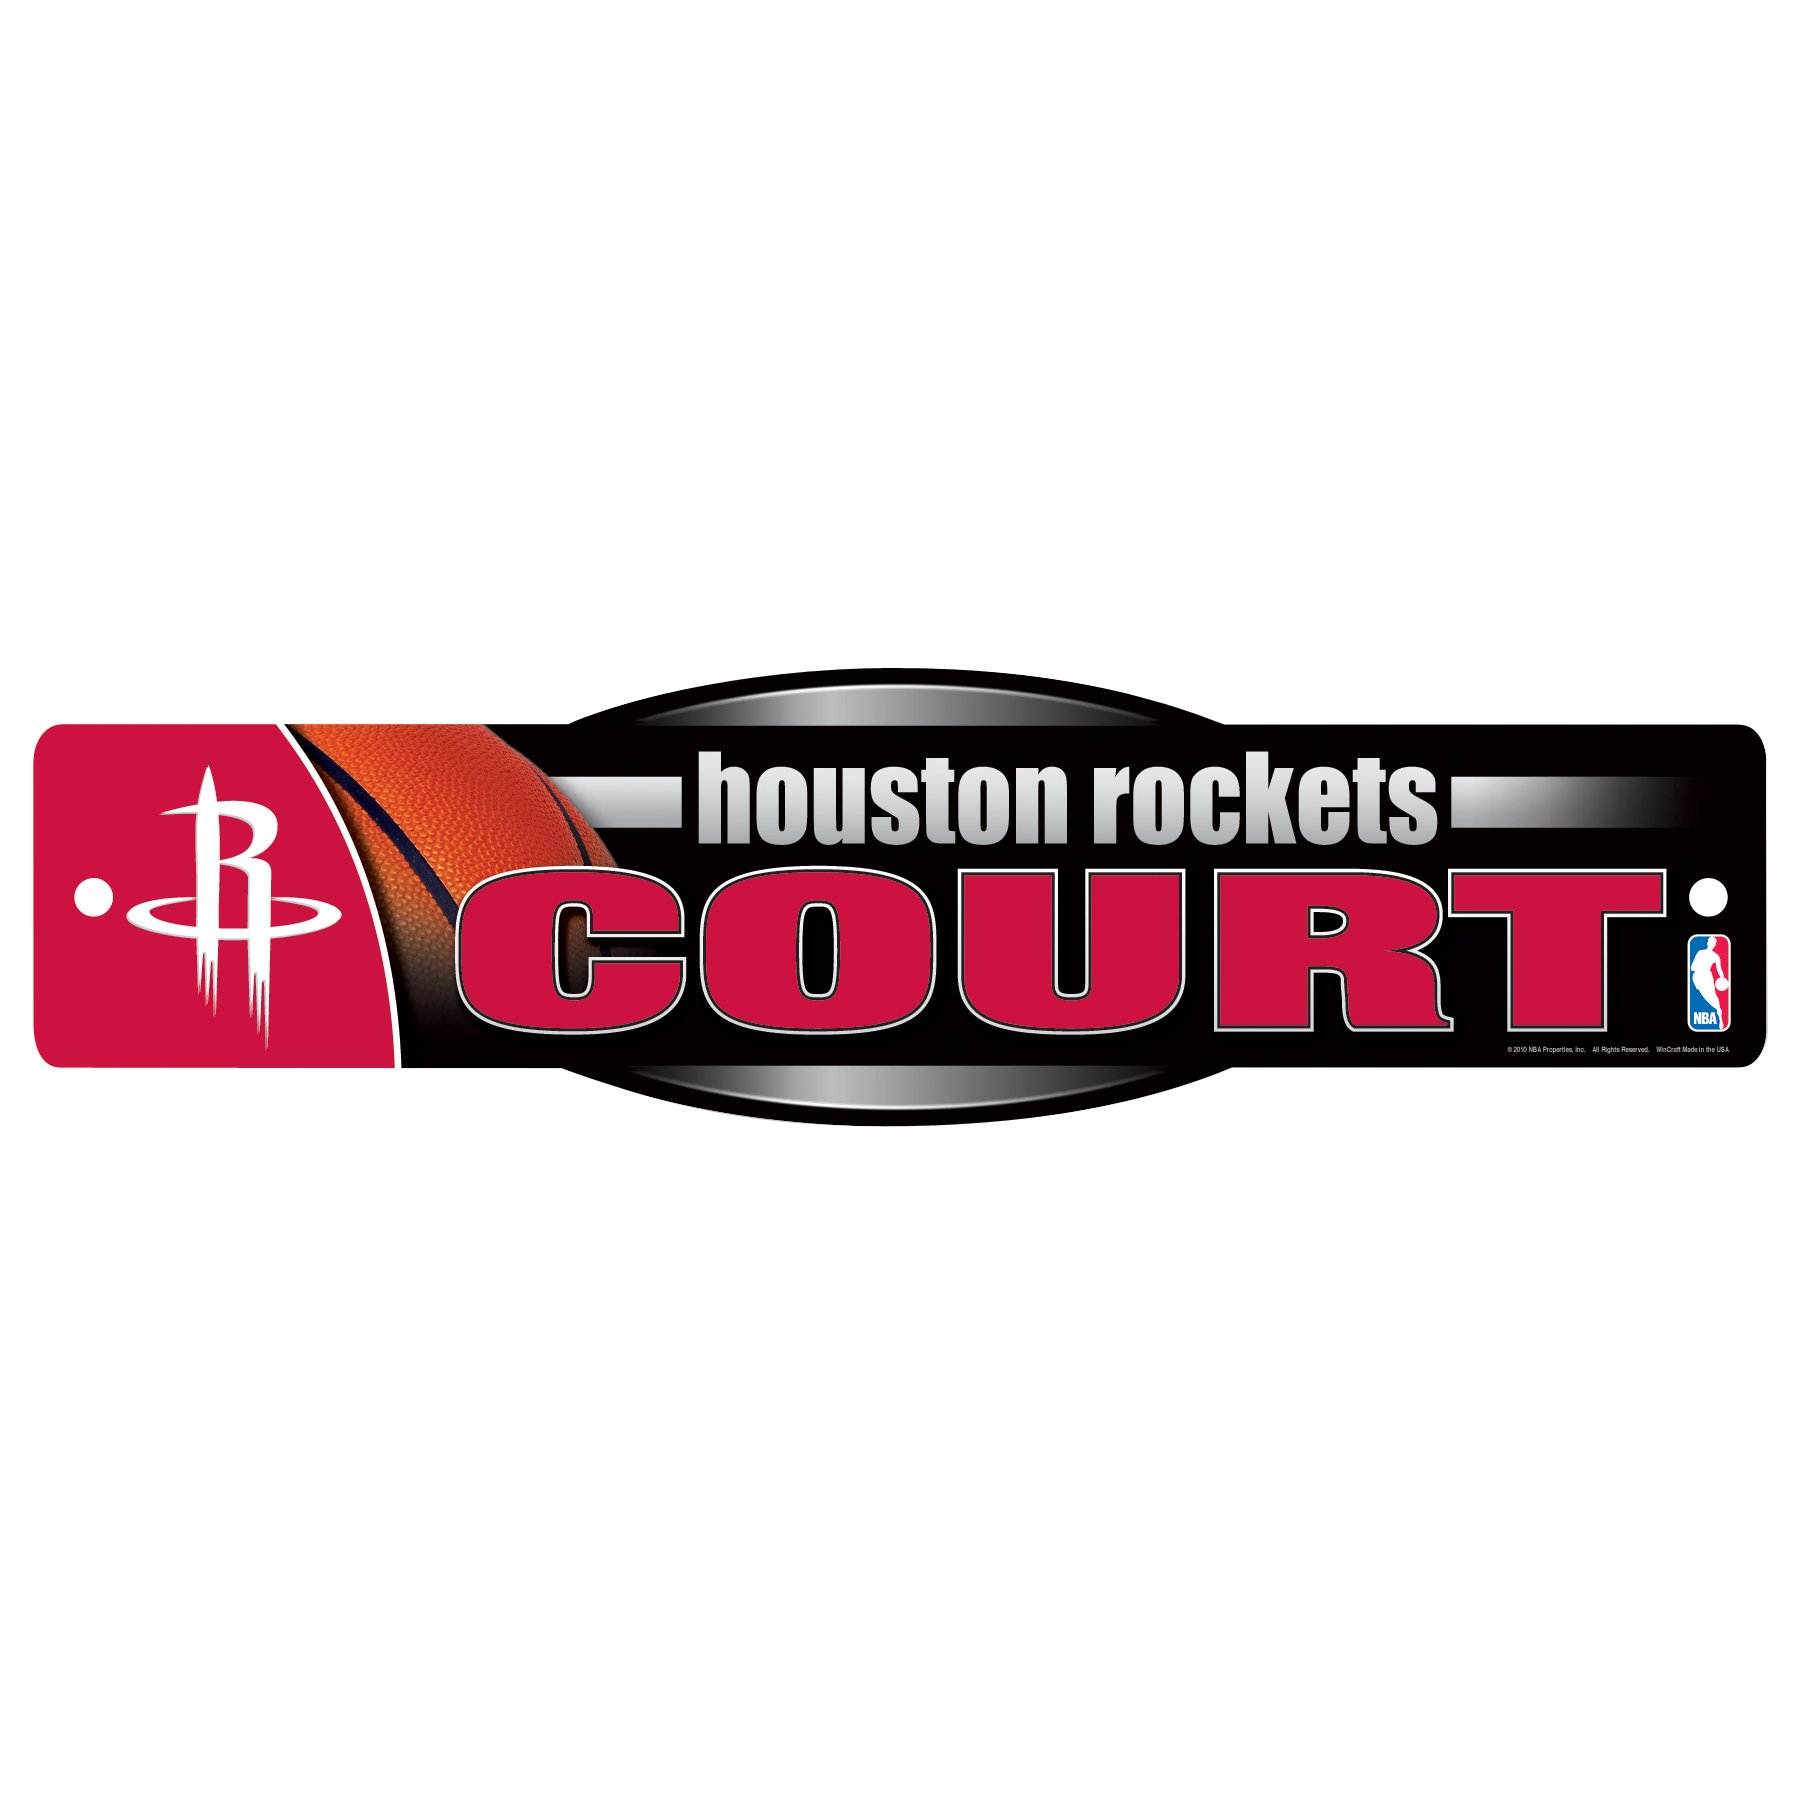 WinCraft NBA Houston Rockets Sign, 4.5 x 17-Inch